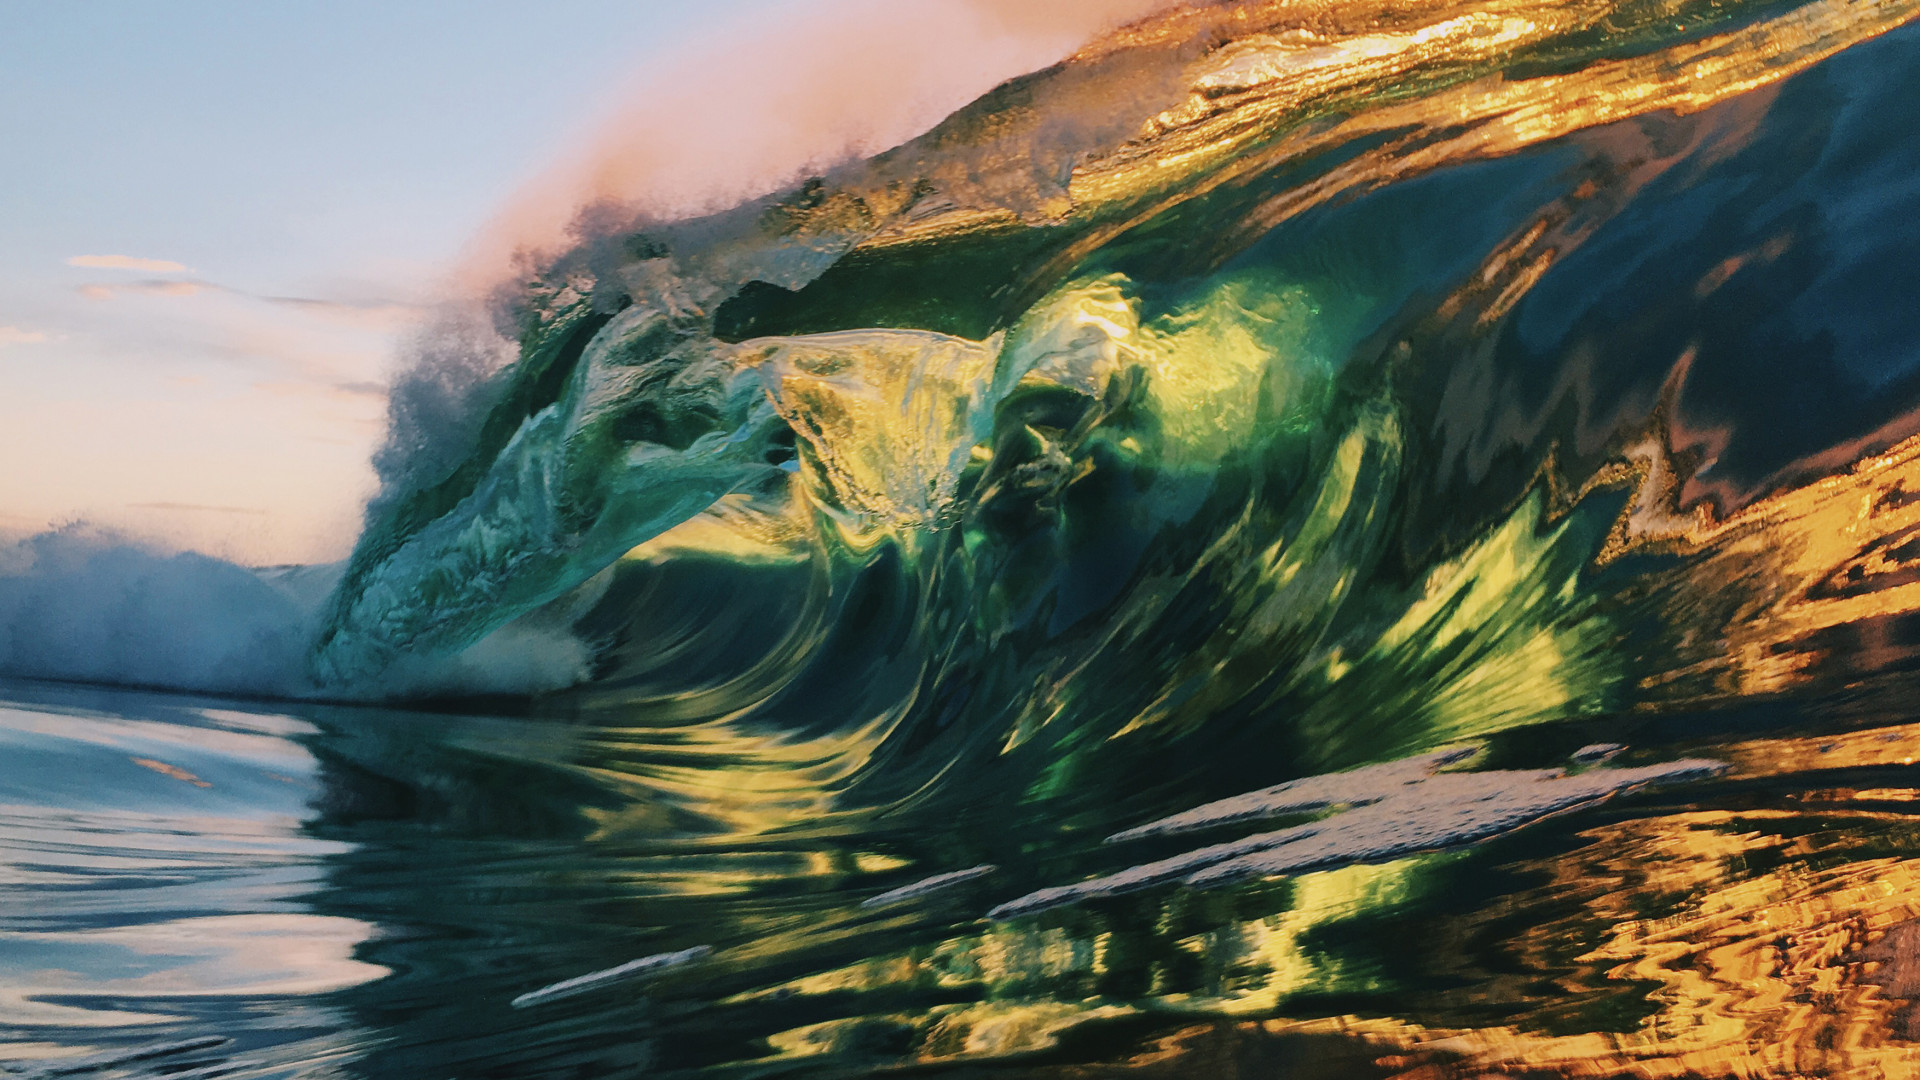 Light glowing through a breaking wave in the ocean